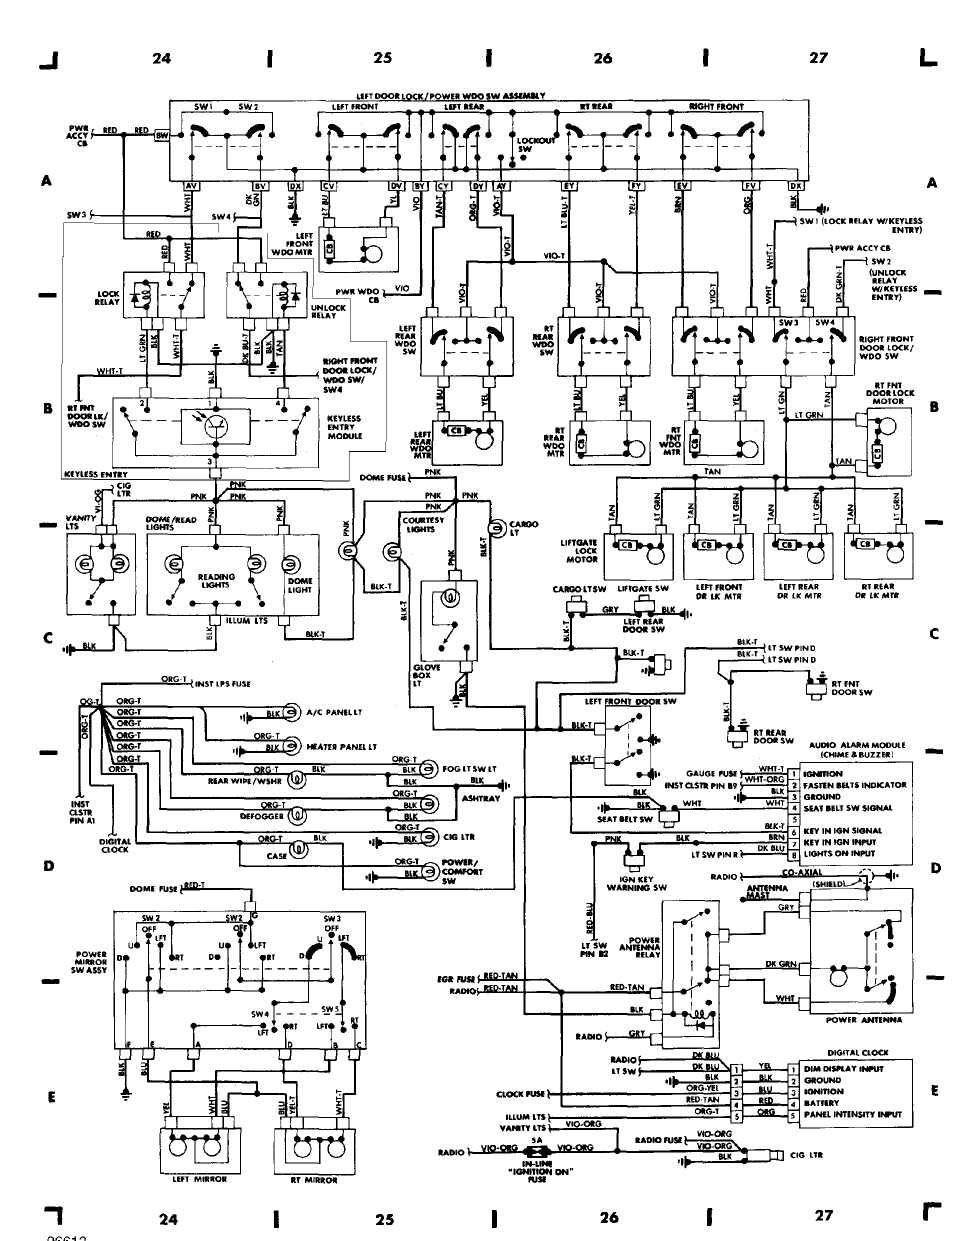 wiring_diagrams_html_61f5e0ad wiring diagrams 1984 1991 jeep cherokee (xj) jeep 2006 jeep wrangler tail light wiring diagram at crackthecode.co